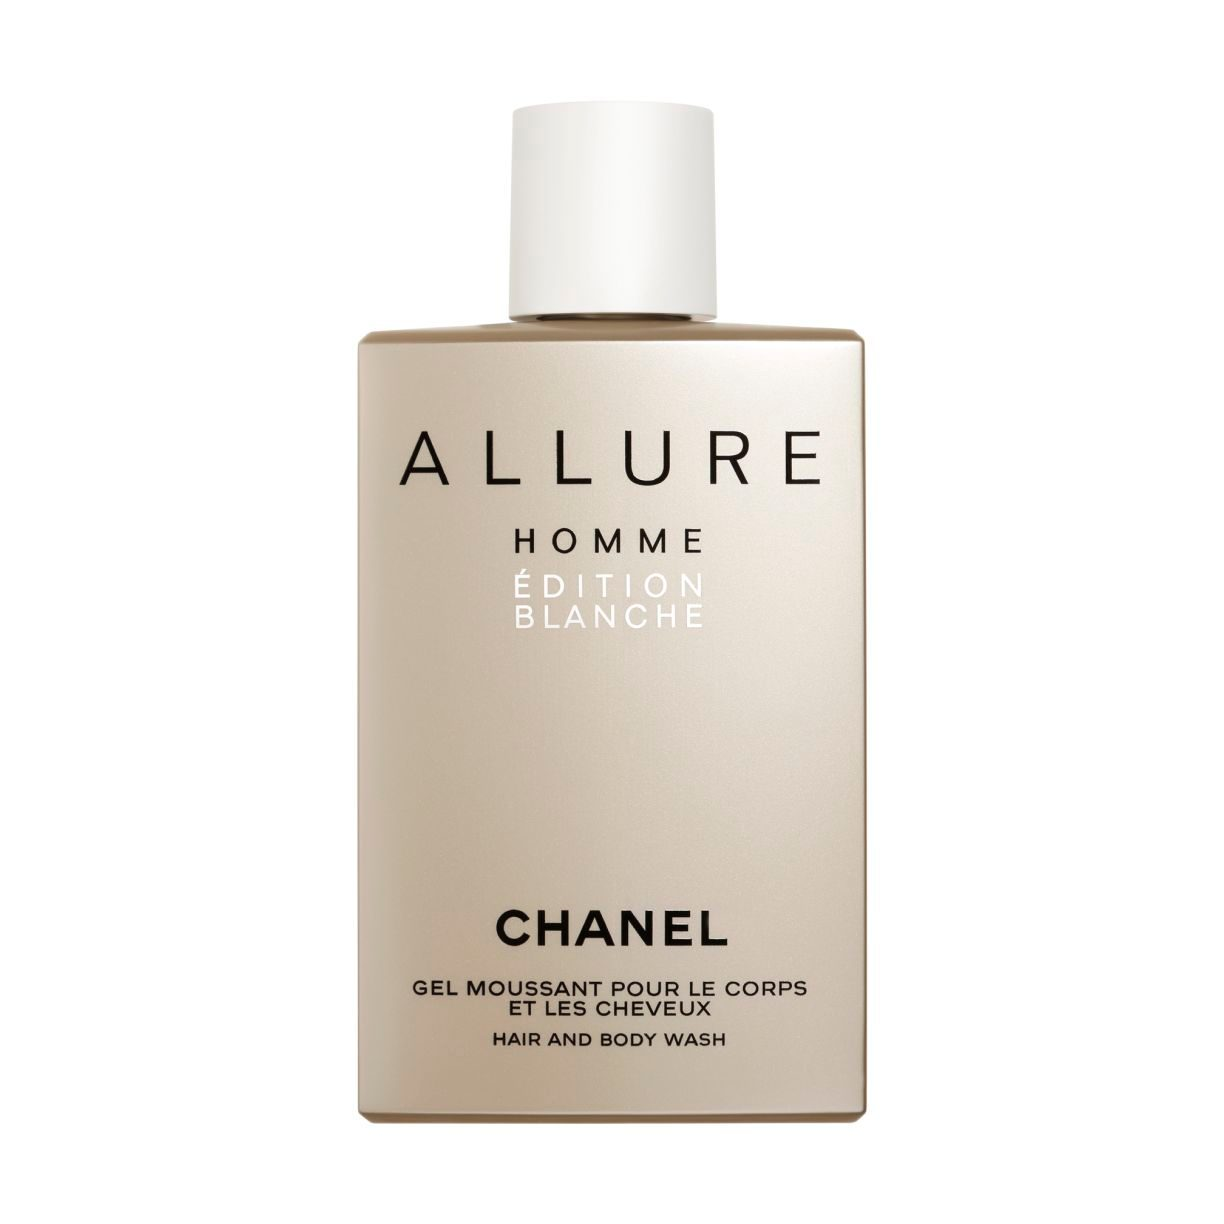 ALLURE HOMME EDITION BLANCHE HAIR AND BODY WASH